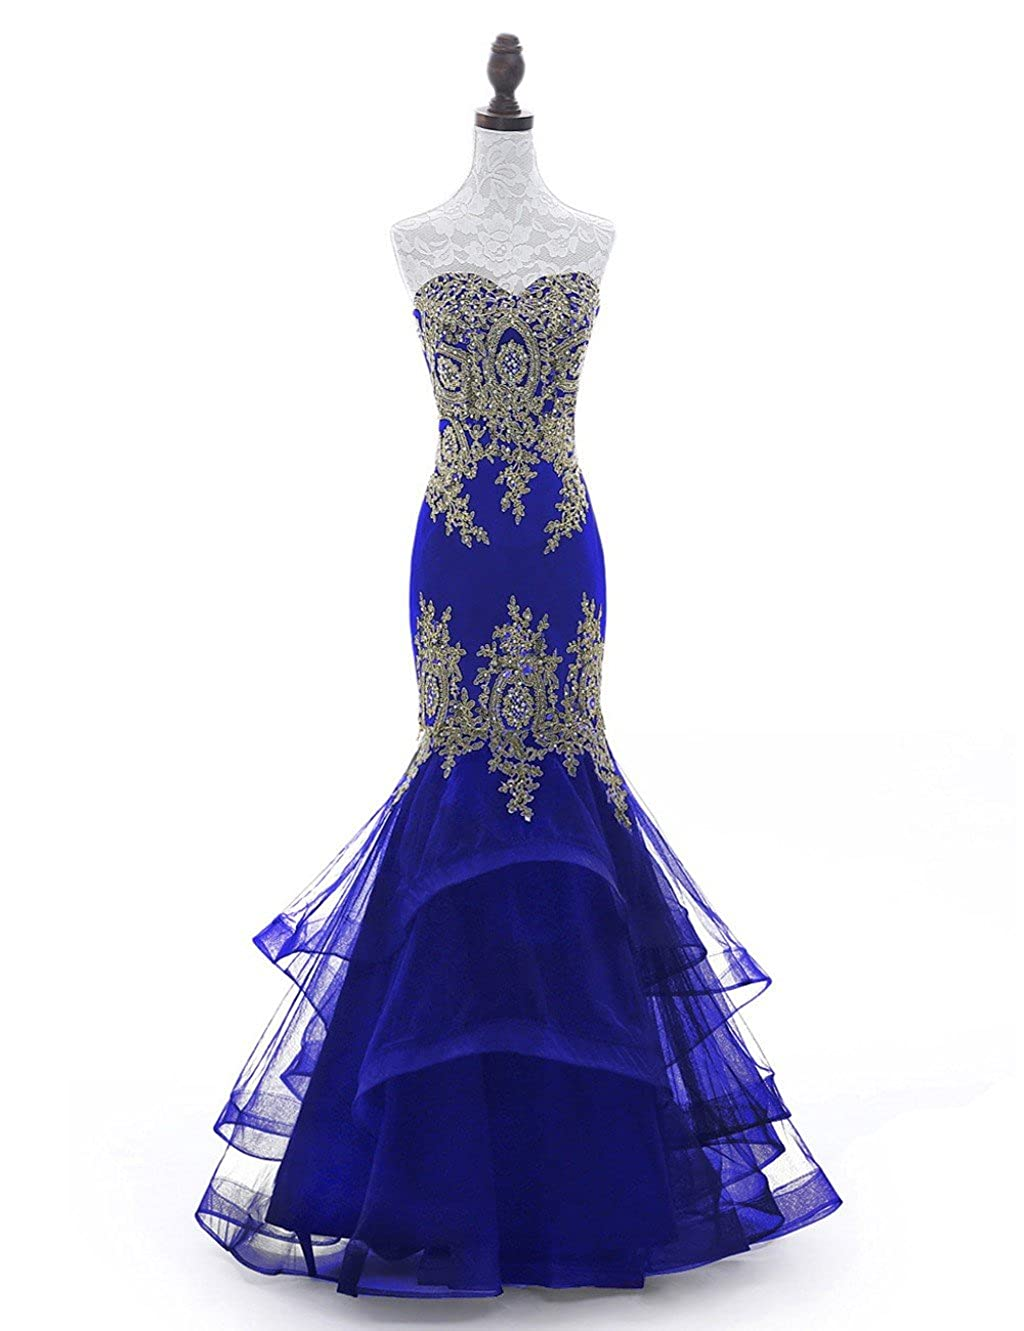 Royal bluee Yesdo gold Lace Formal Evening Gown Mermaid Prom Dresses with Tiered Skirt